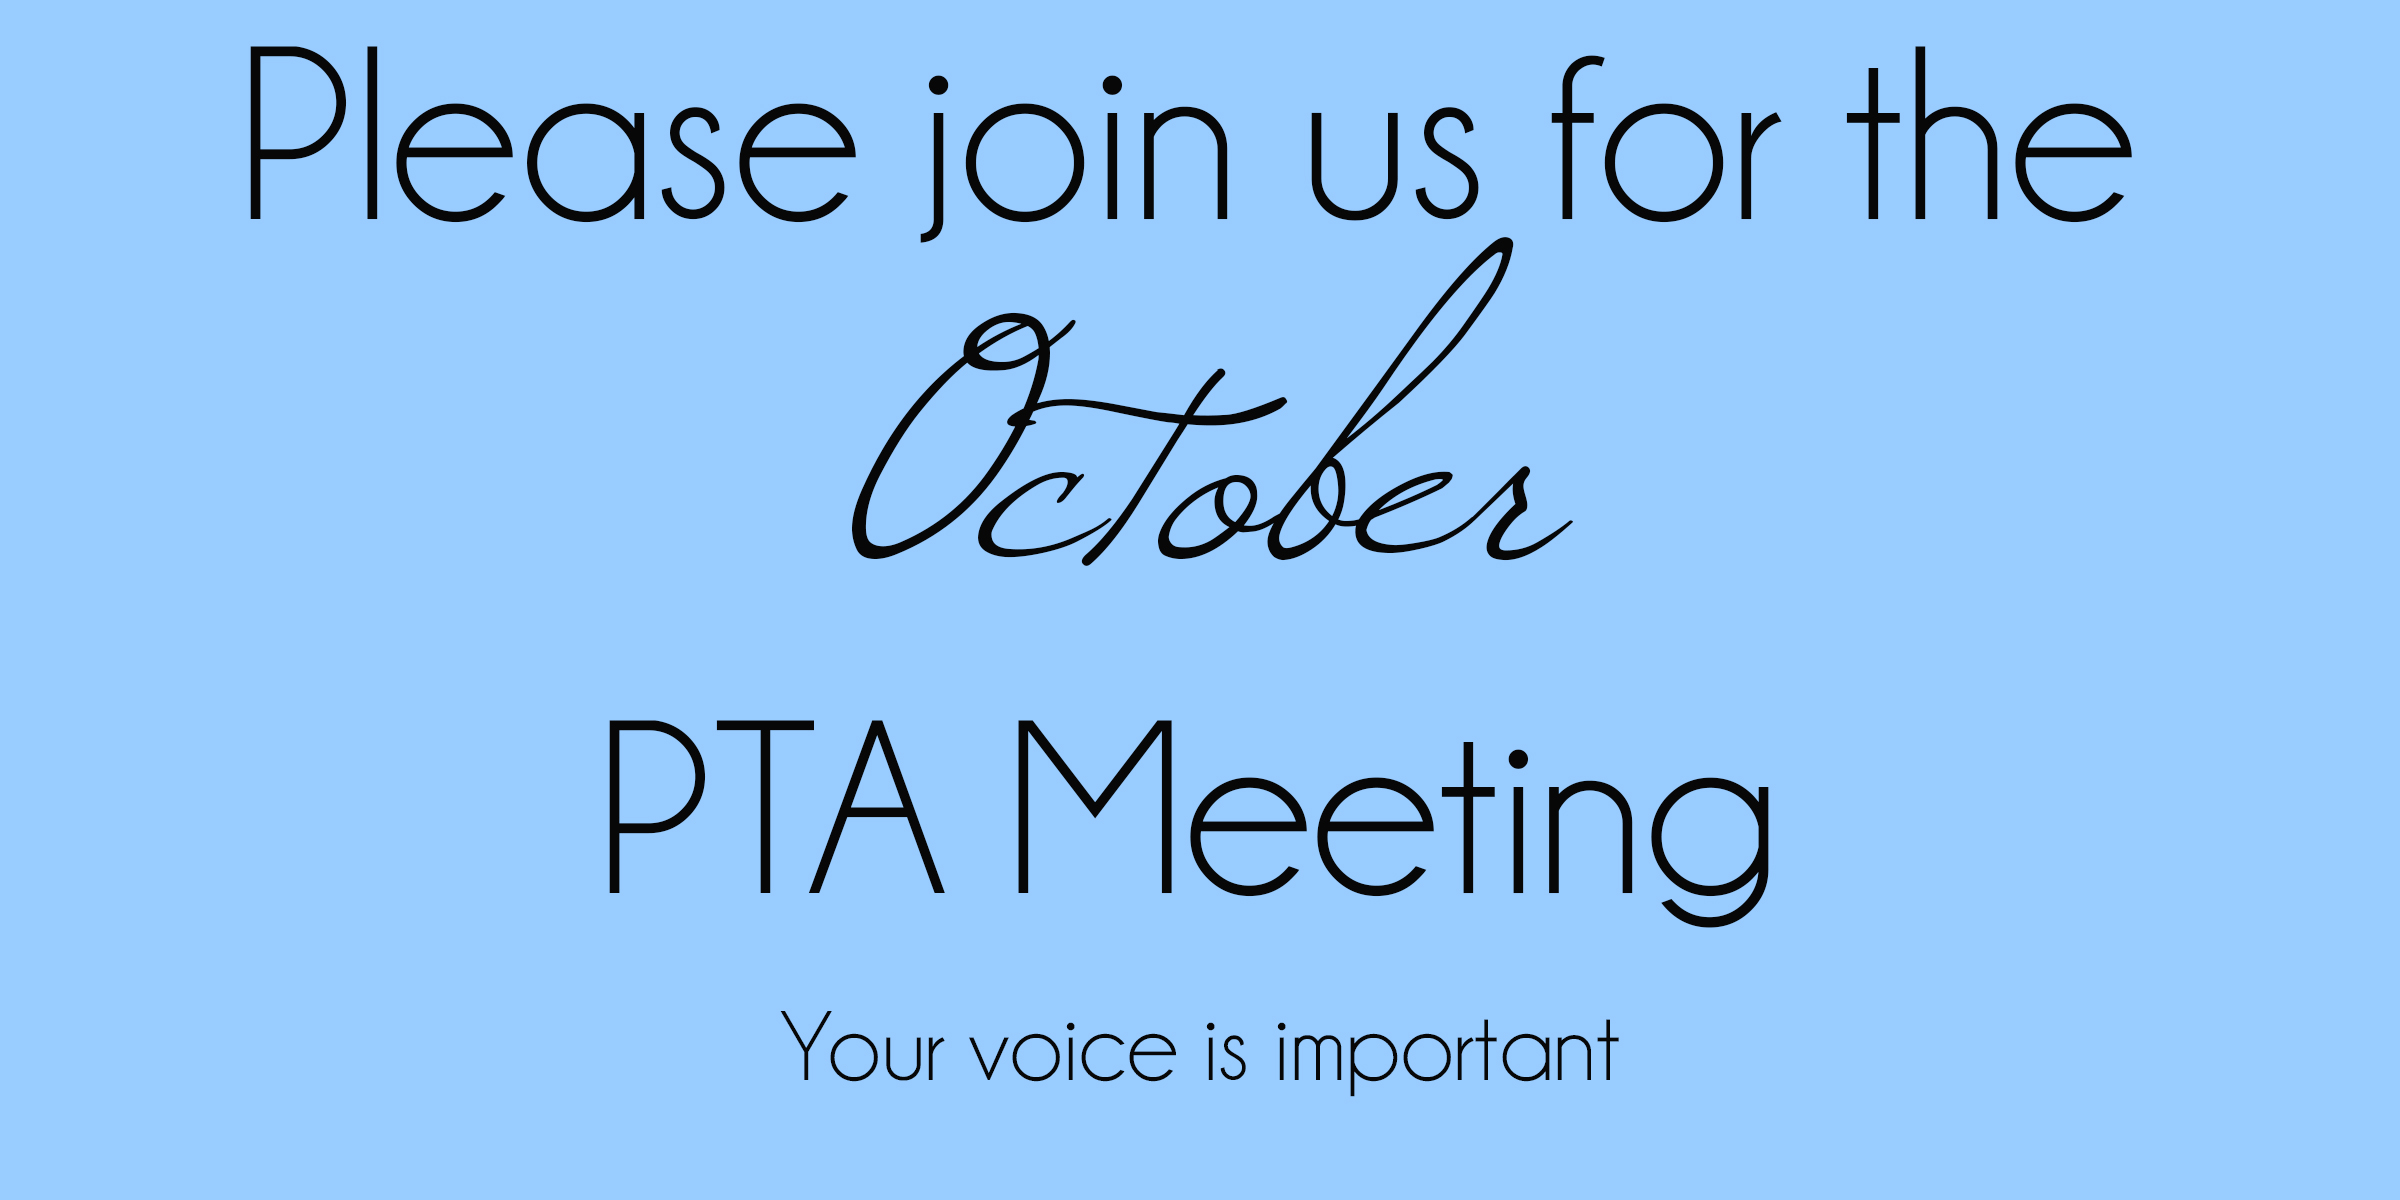 Meeting-announcement-October